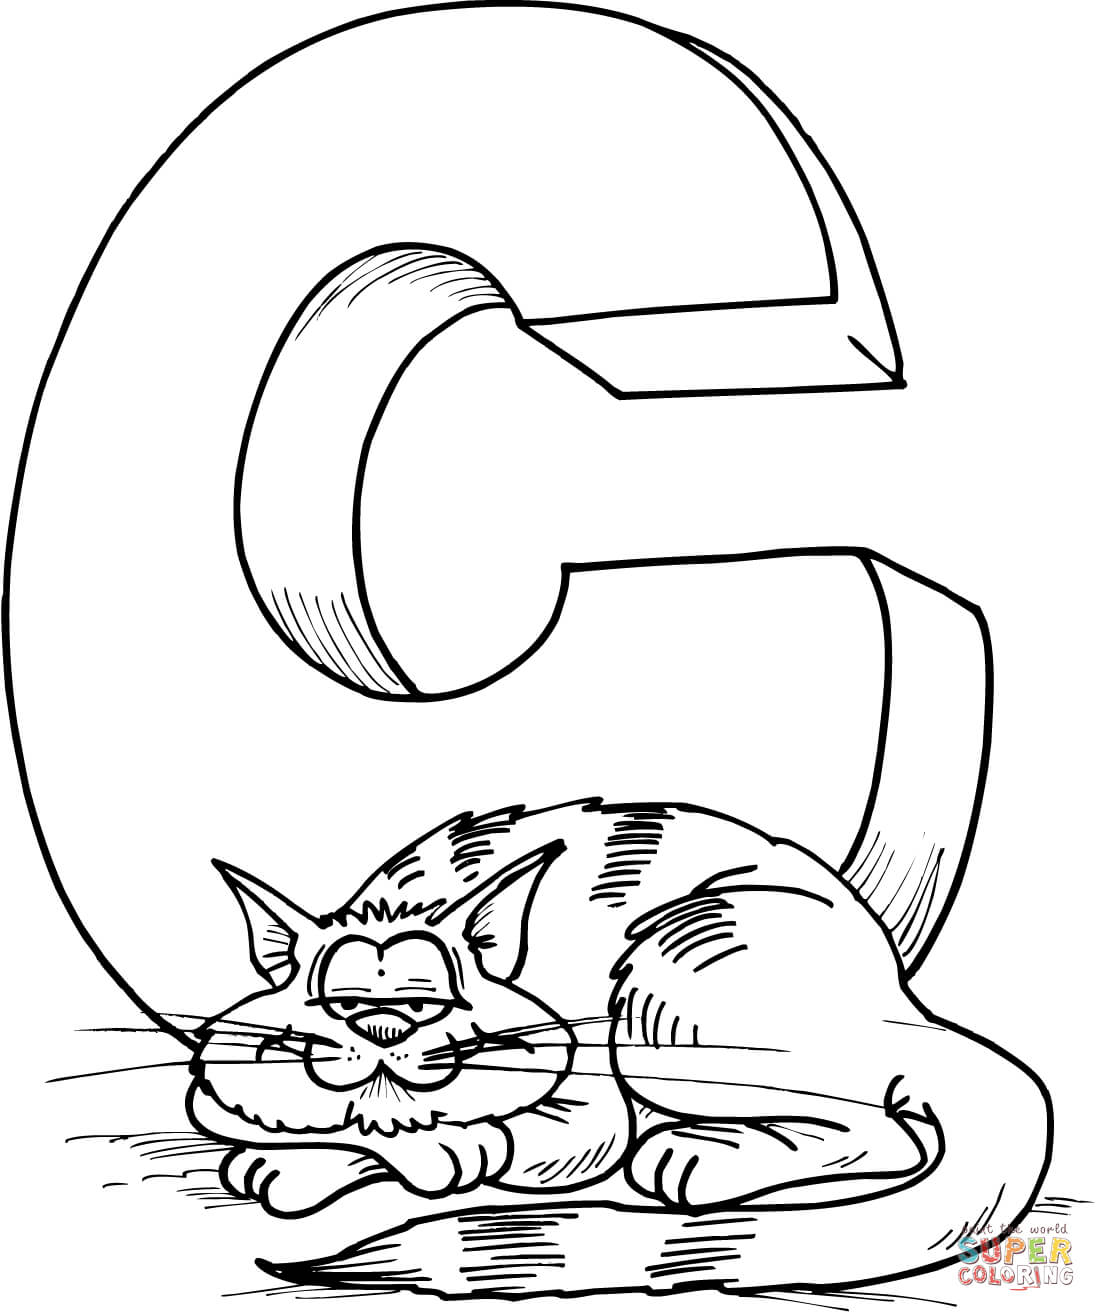 1096x1312 Letter C Is For Cat Coloring Page Free Printable Coloring Pages